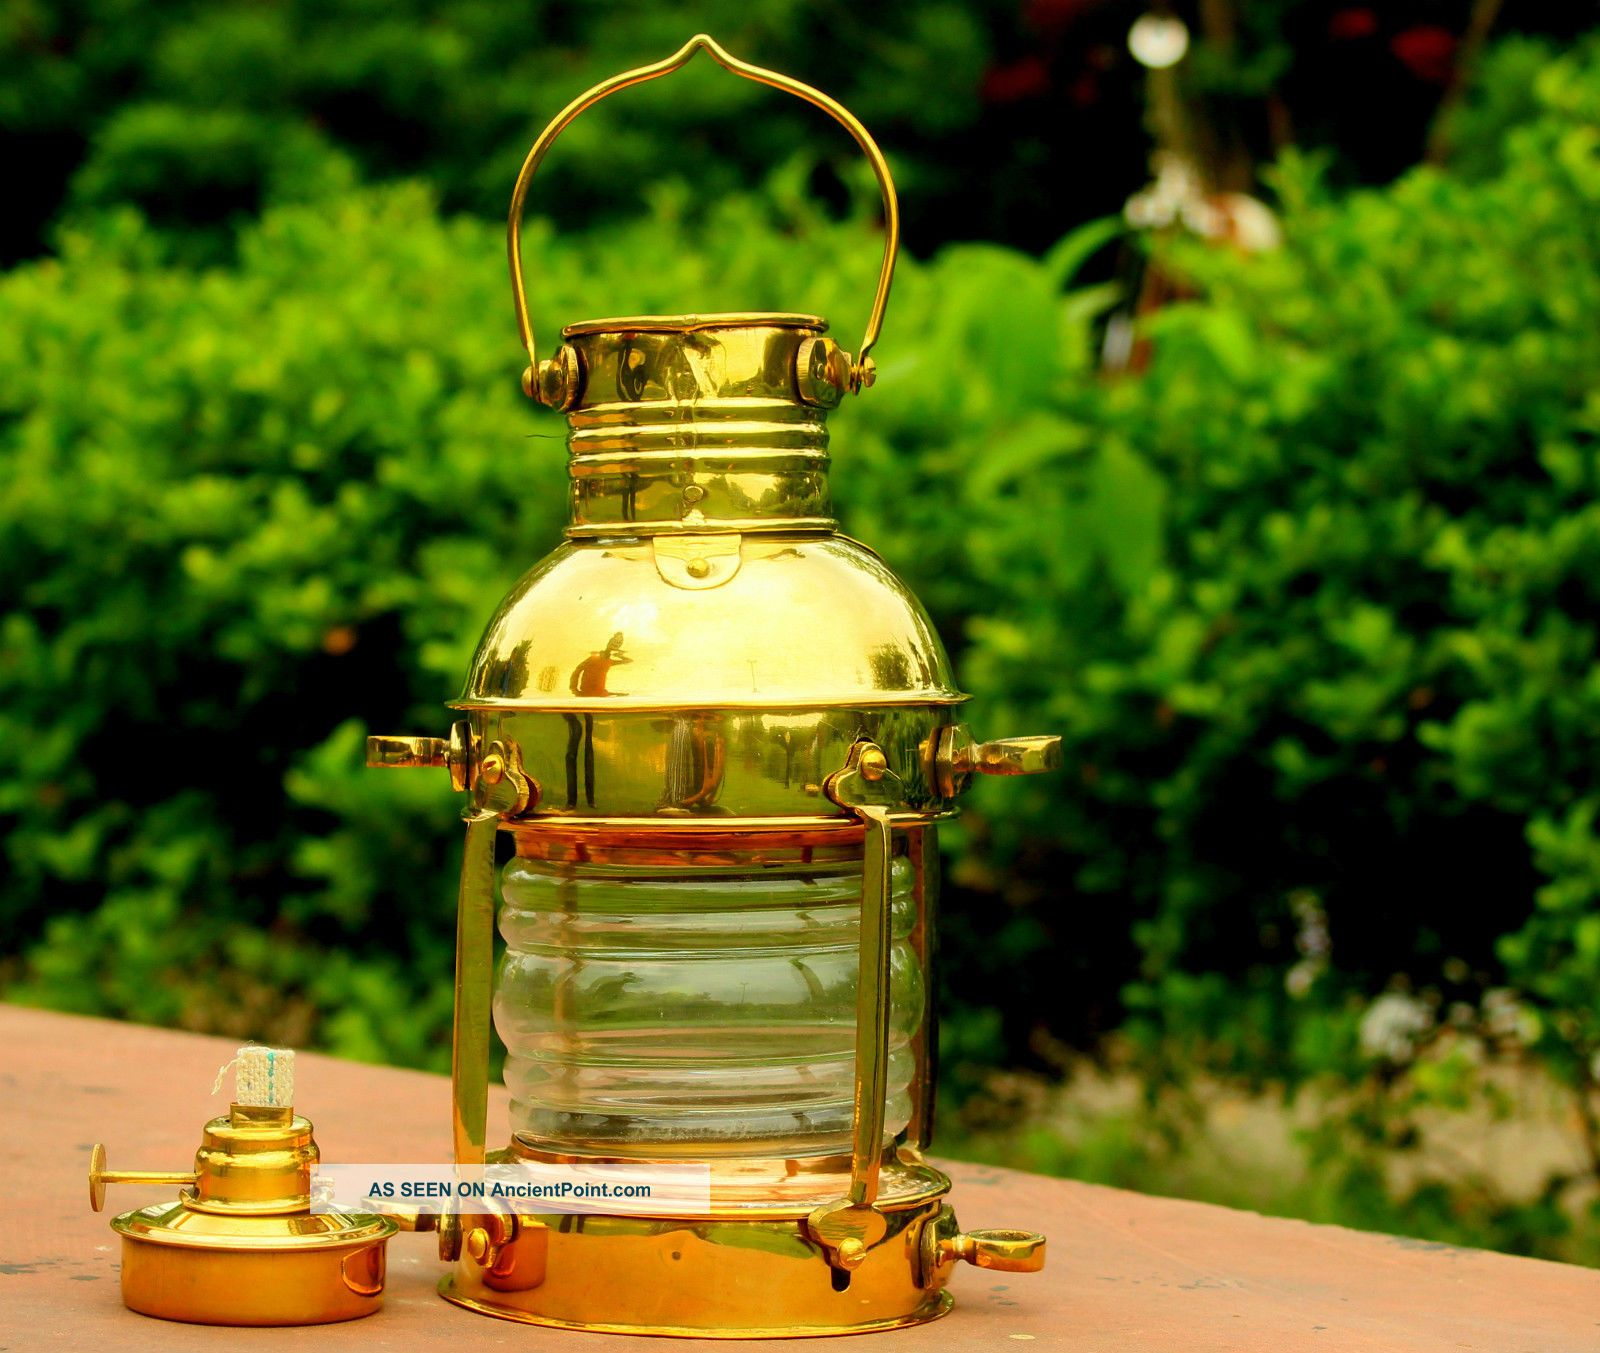 Marine Ship Oil Lamp Antique Shiny Brass Hanging Oil Lantern Home Decorative Other Maritime Antiques photo